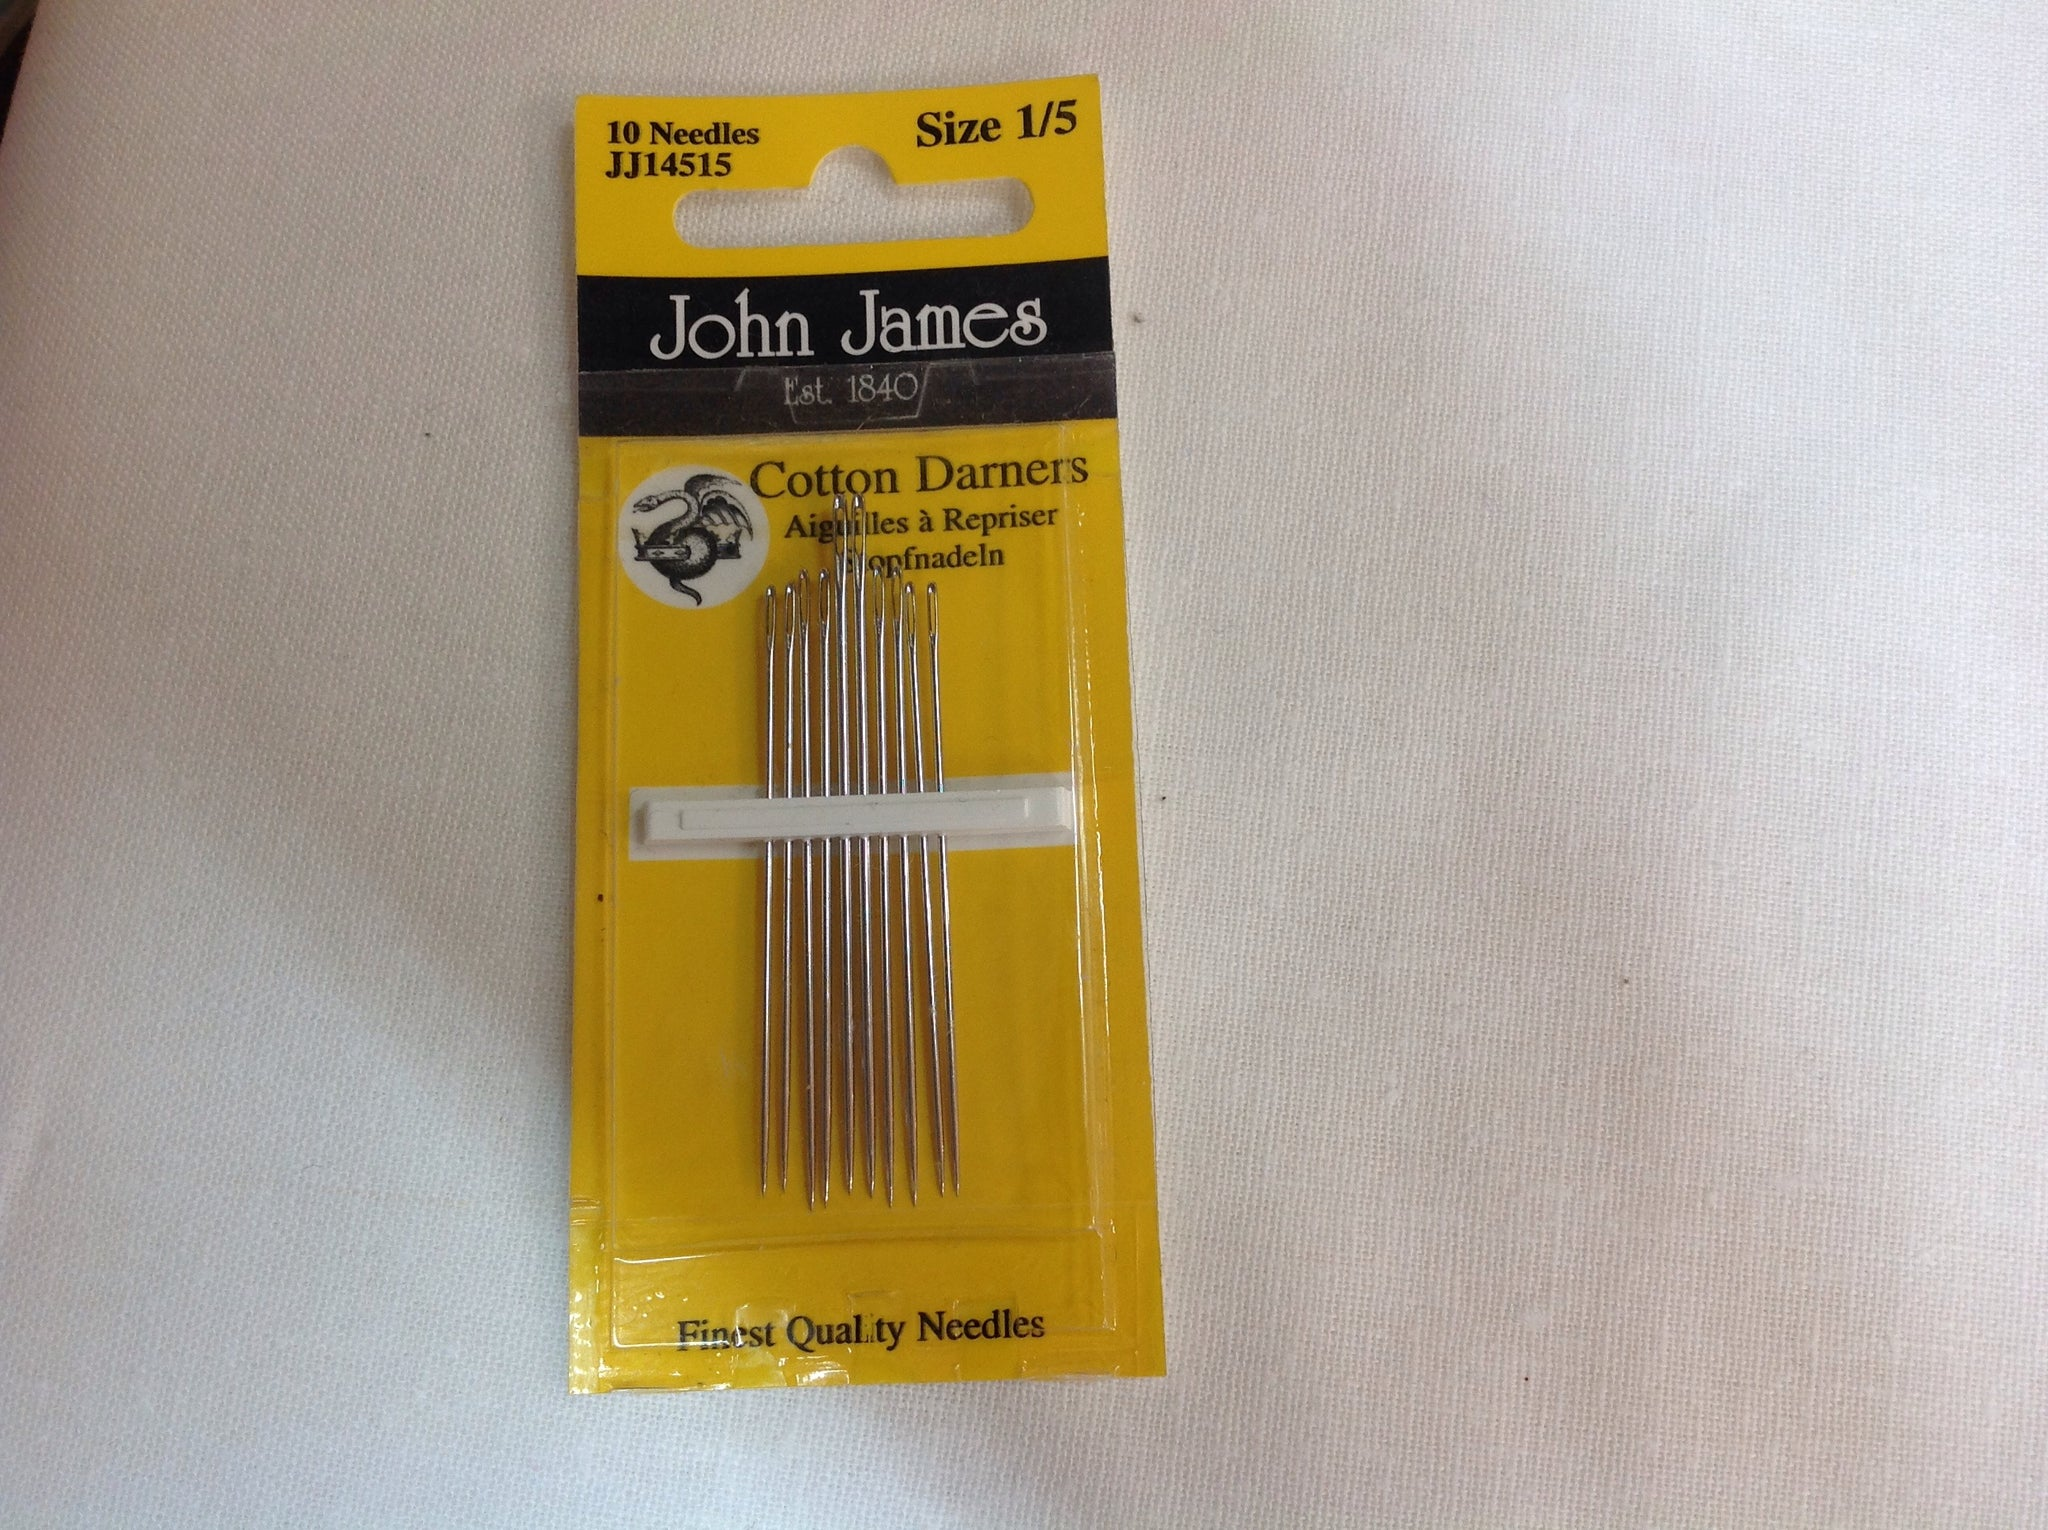 John James - (Size 1/5) Cotton Darners